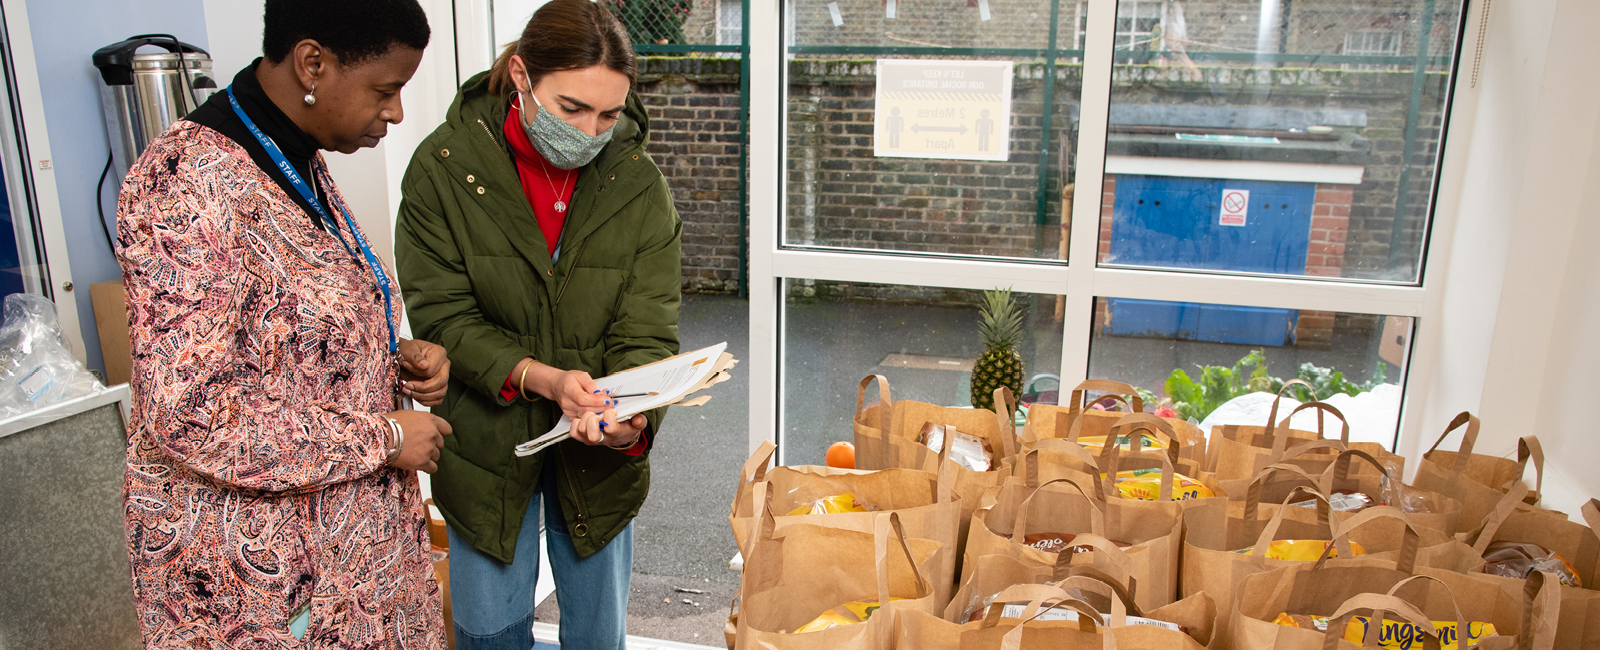 Staff wearing masks coordinating bags of food